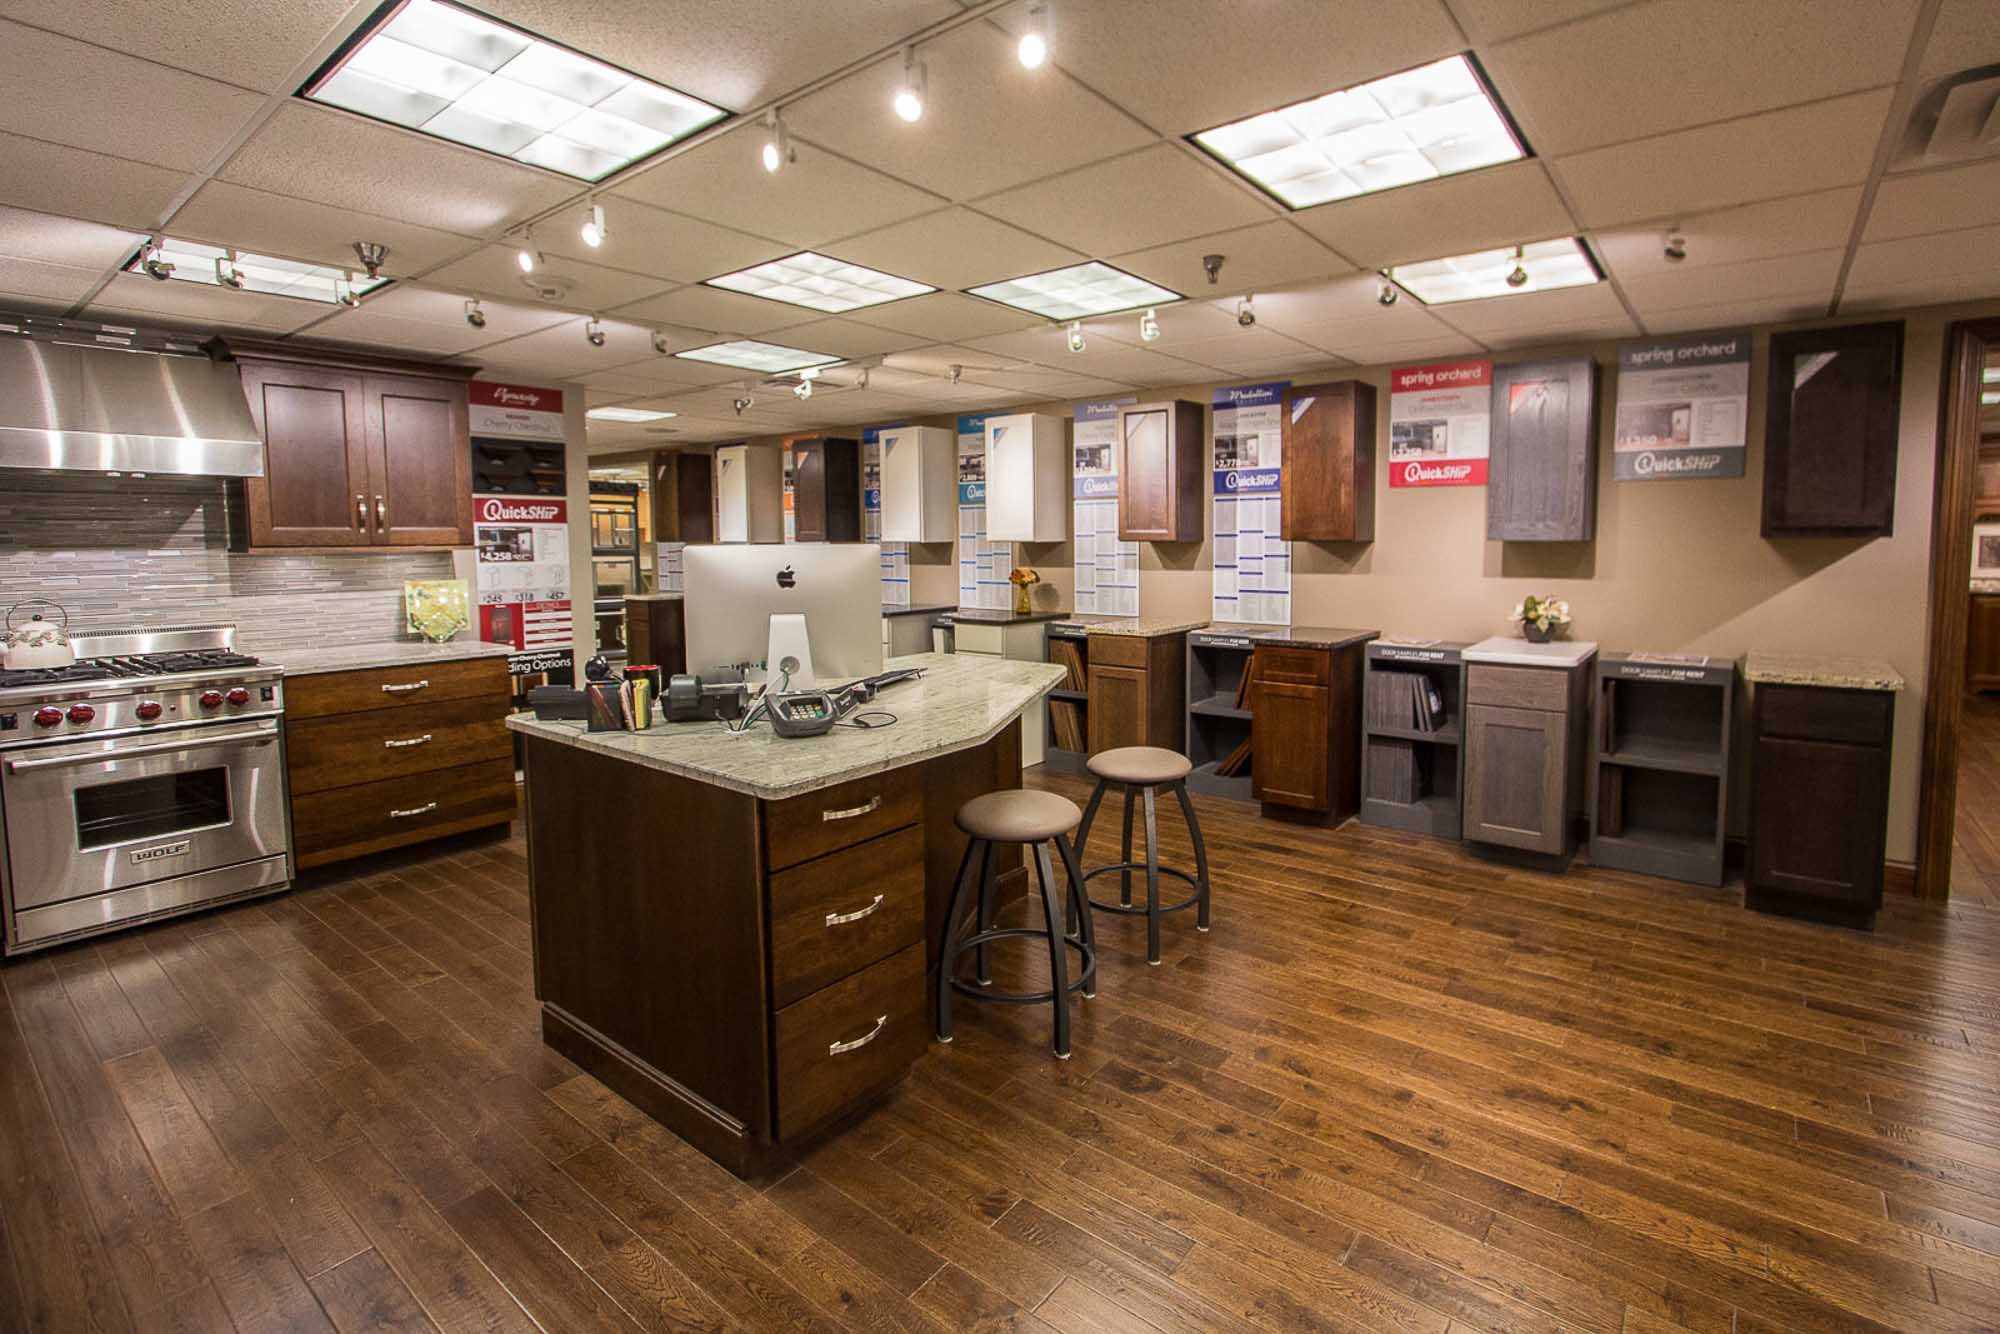 Merveilleux Schilling Truly Stands Behind Being Voted The U201cBest Kitchen And Bath  Remodeling Storeu201d For The NWI Times Best Of The Region Yearly Competition.